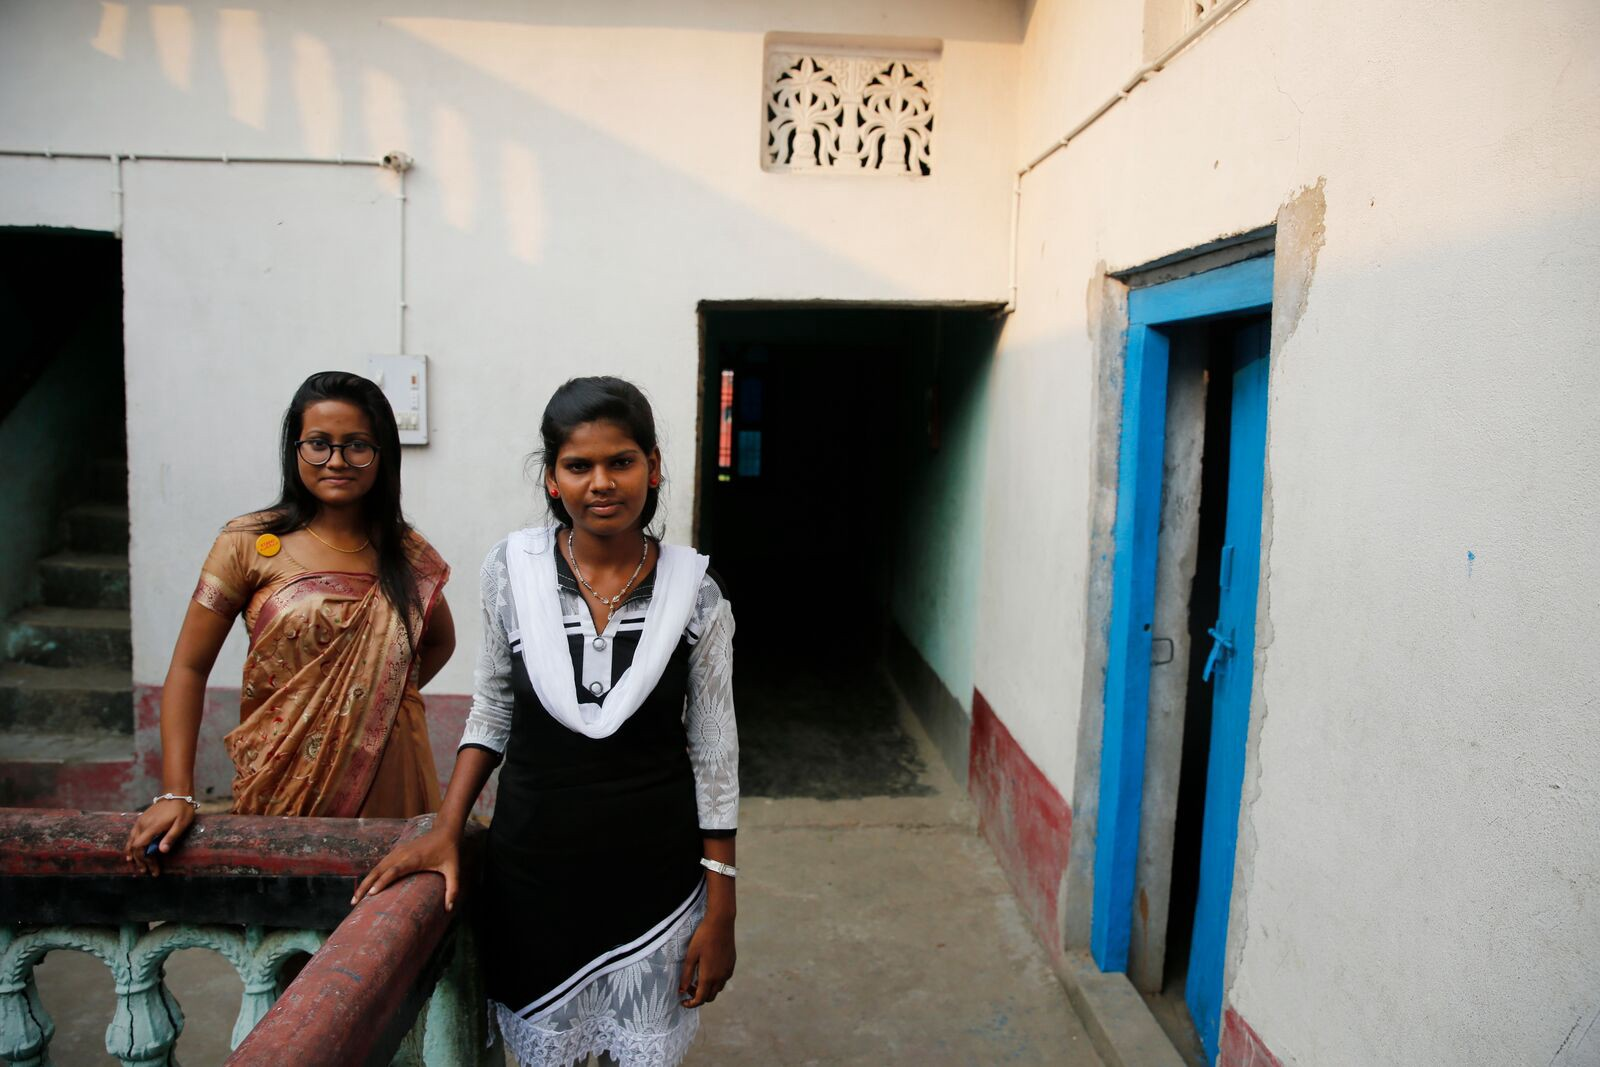 18 Year Old Ruhi Rallies More Than 300 Girls In Her Village To Return To School